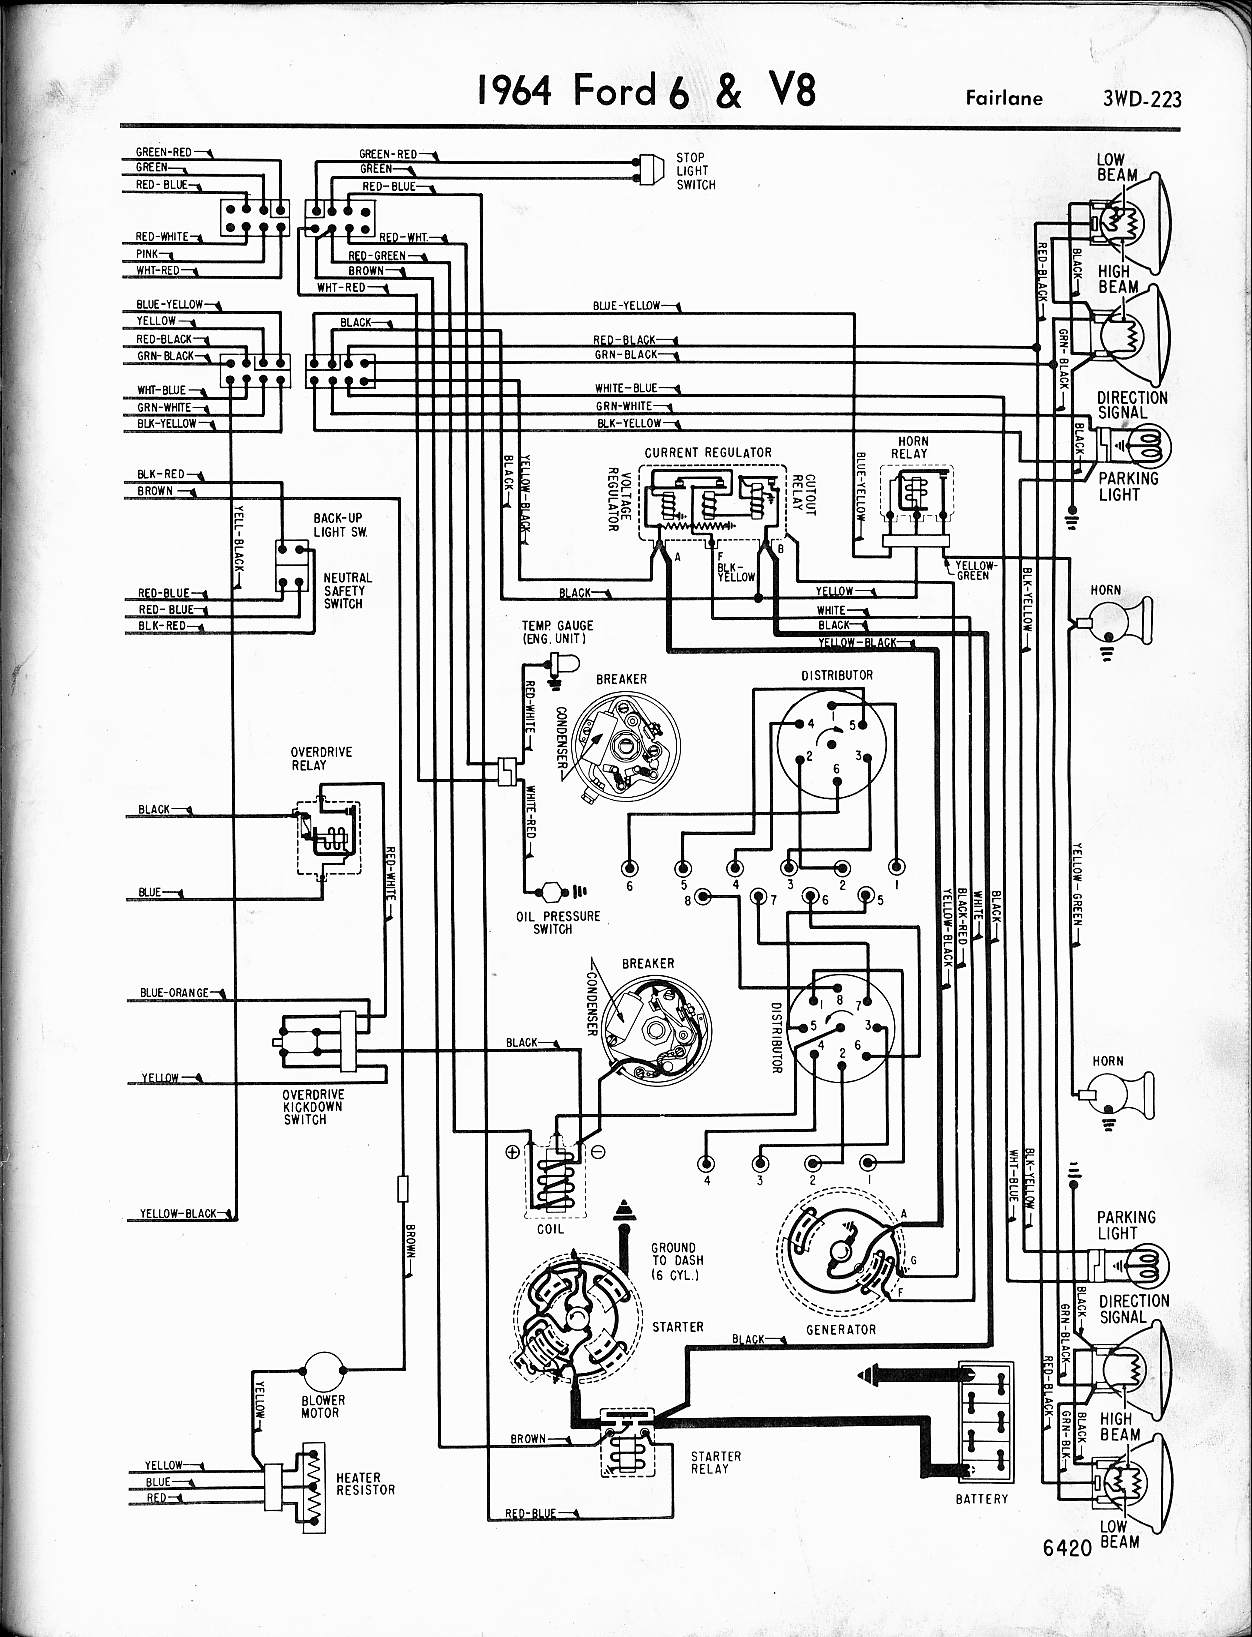 1964 Ford Galaxie Chassis Diagram Not Lossing Wiring 1967 Ltd 57 65 Diagrams Rh Oldcarmanualproject Com 1966